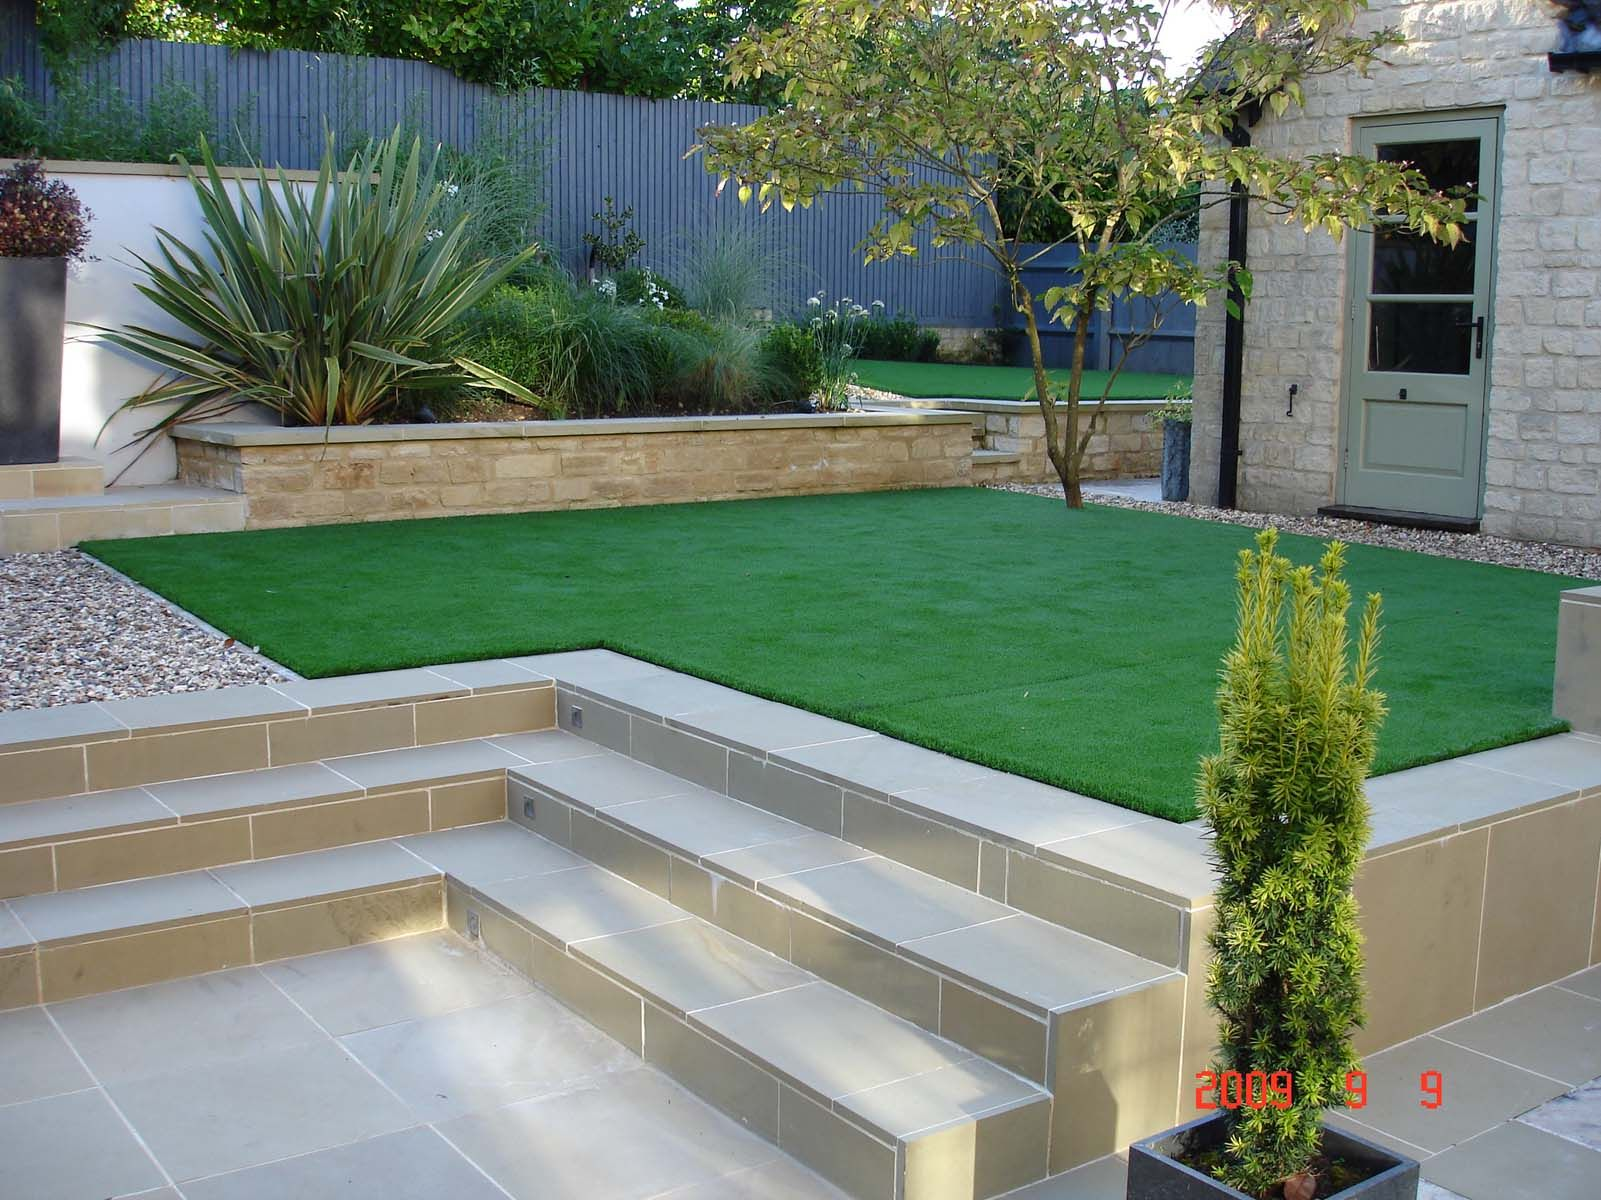 Low maintenance with artificial grass astro turf garden for Contemporary garden design ideas